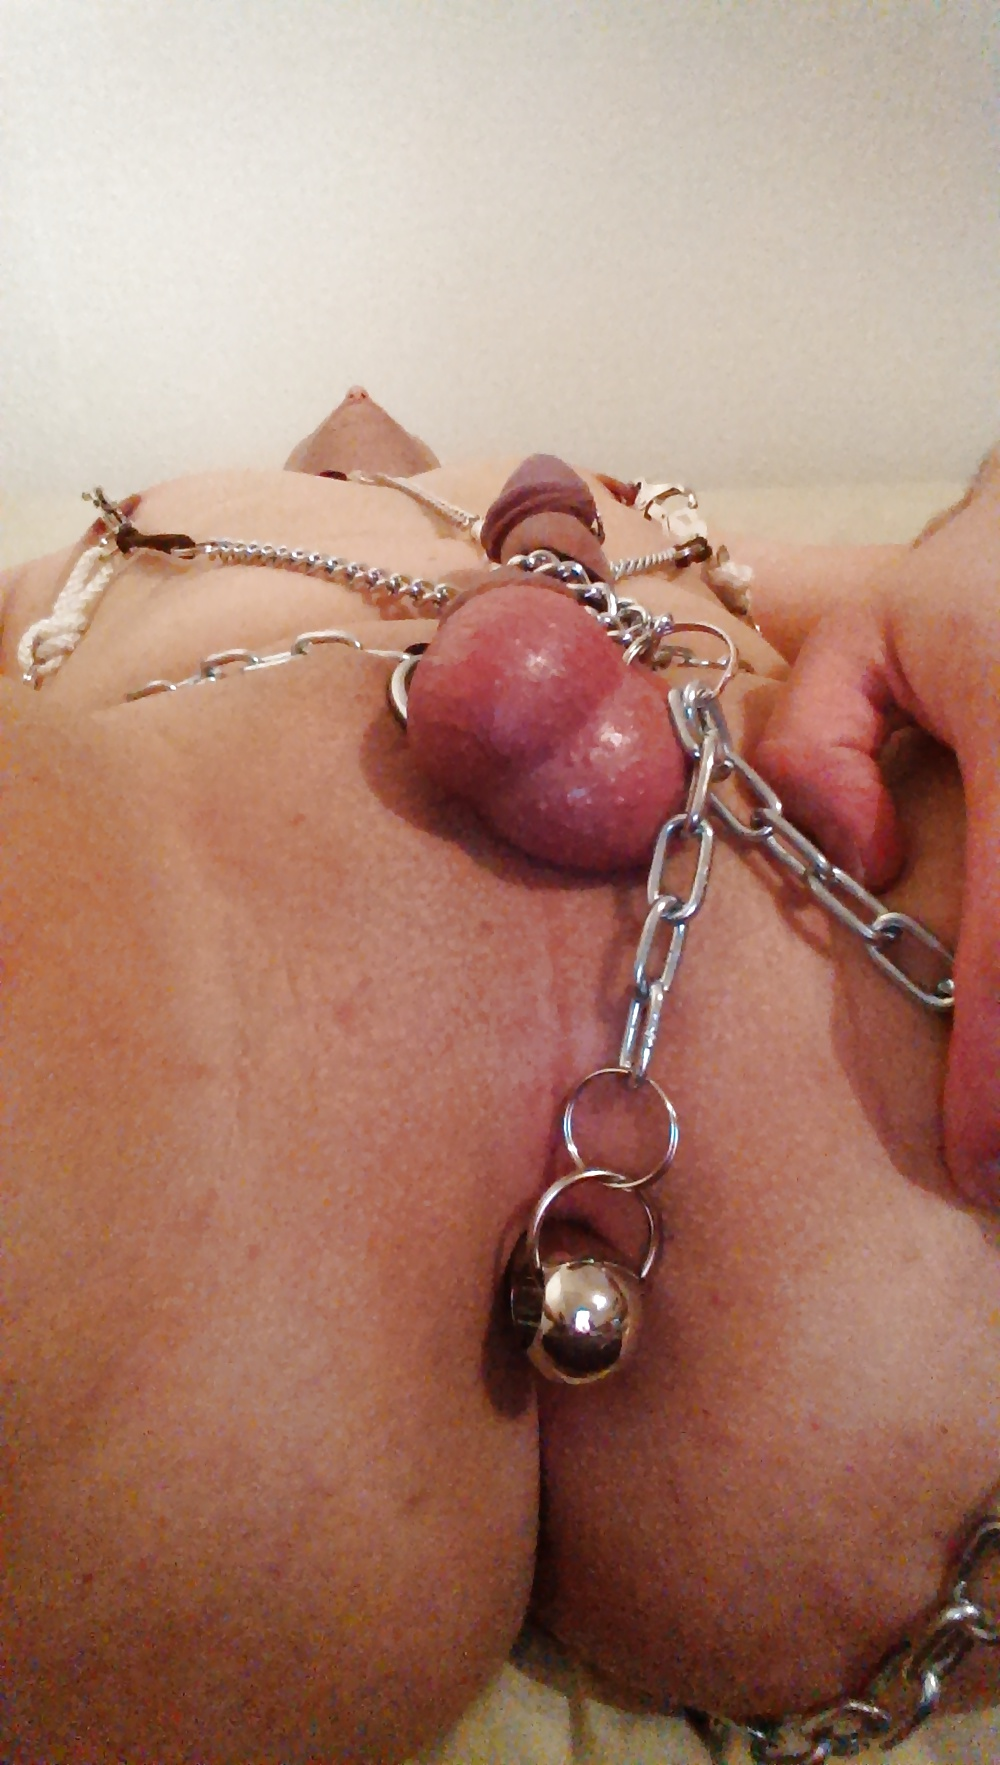 Bald pussy nipple clamps — photo 3